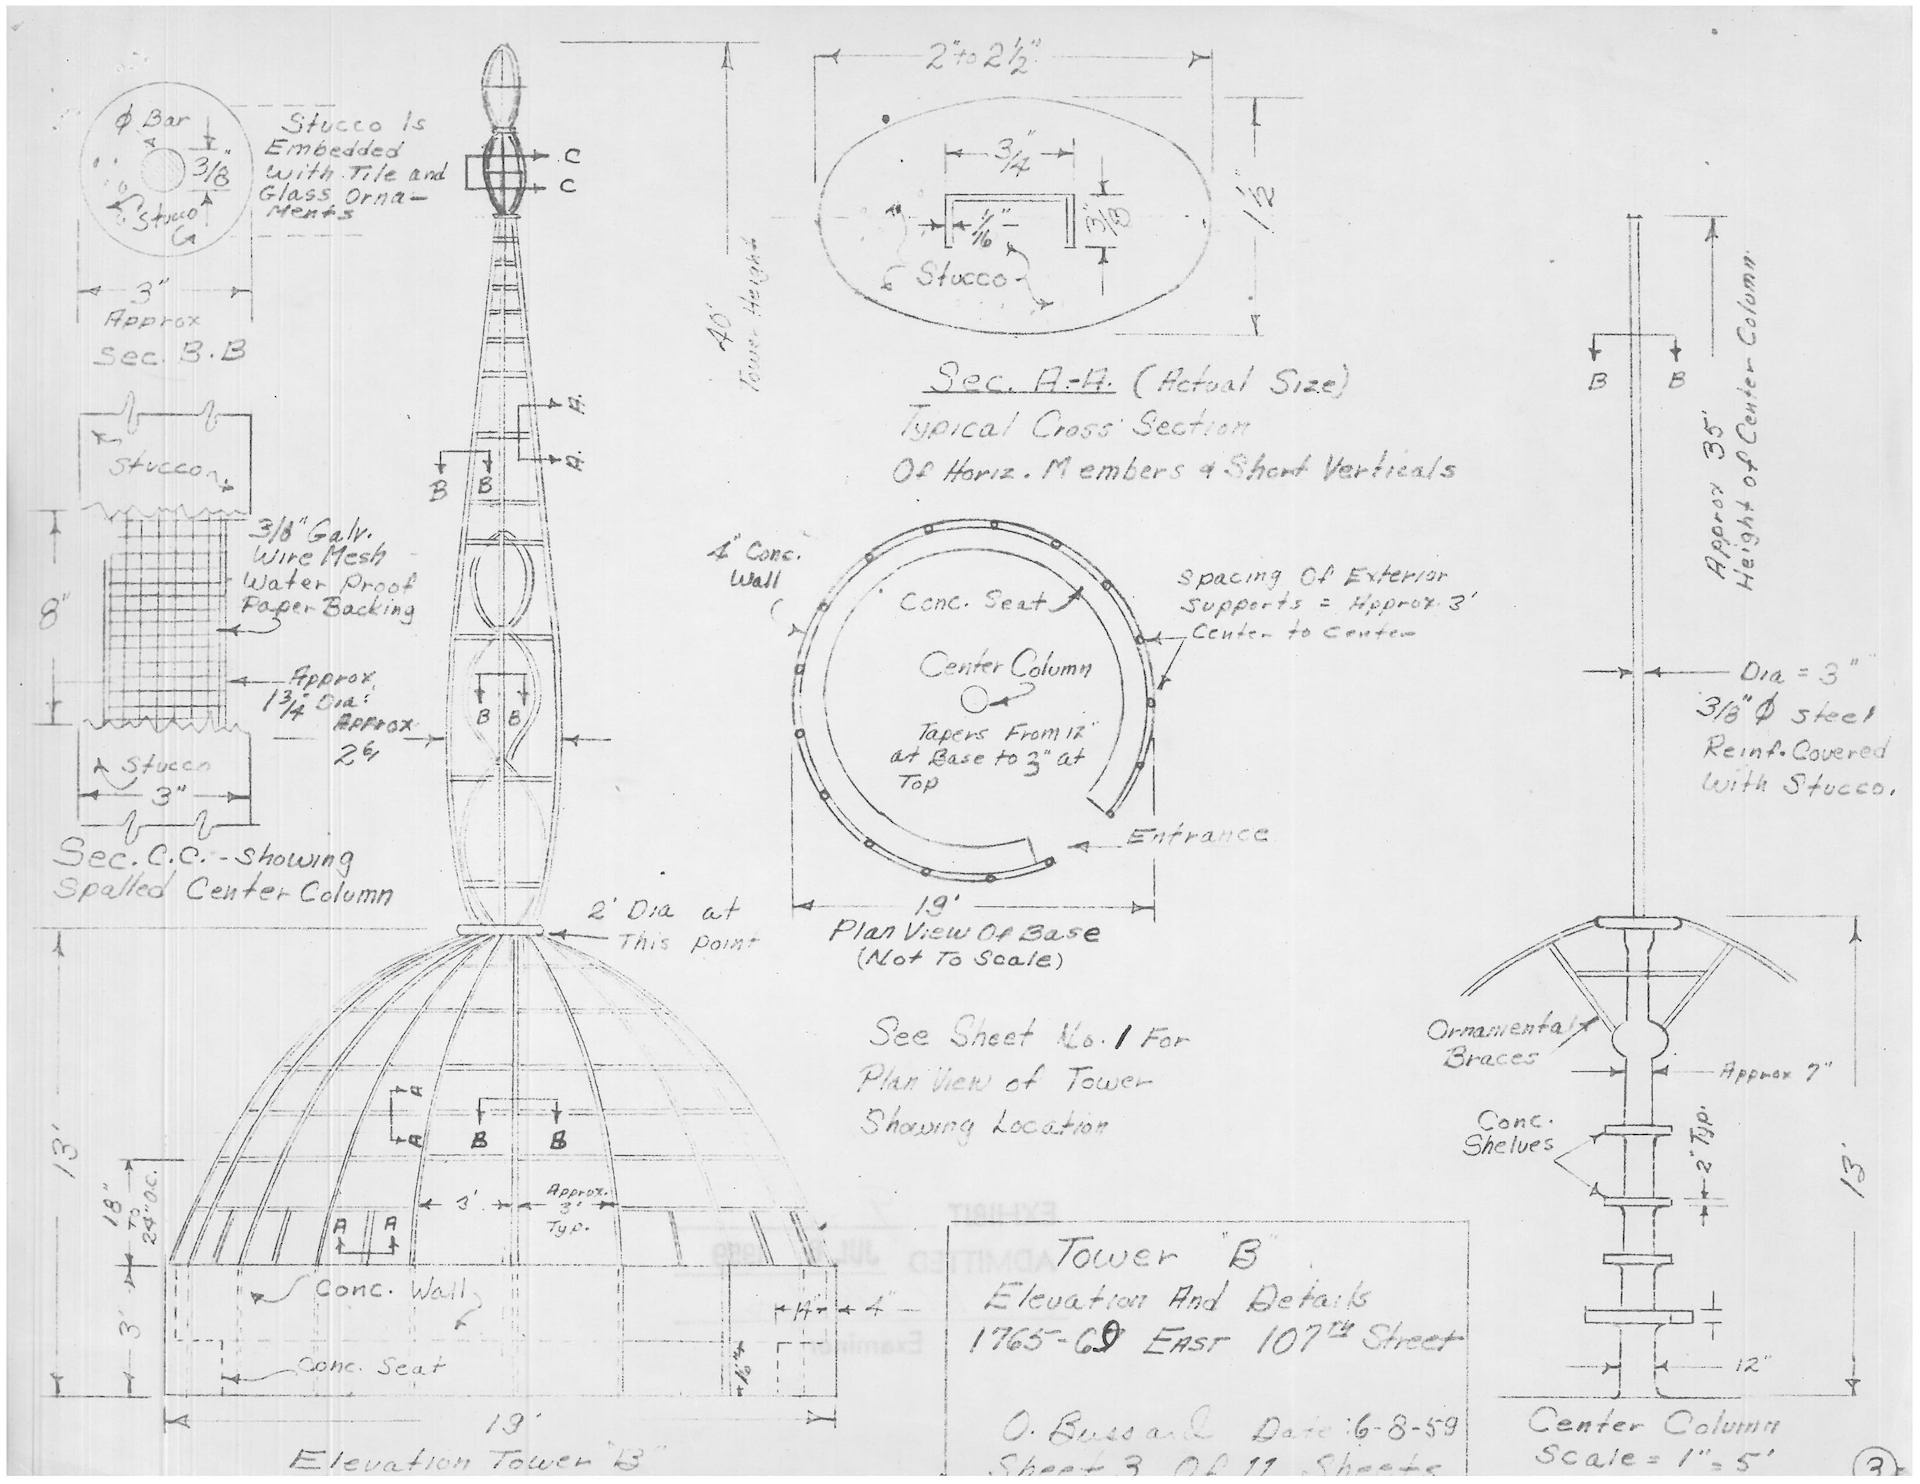 Sketch of Tower B by Oren Ray Bussard, June 1959